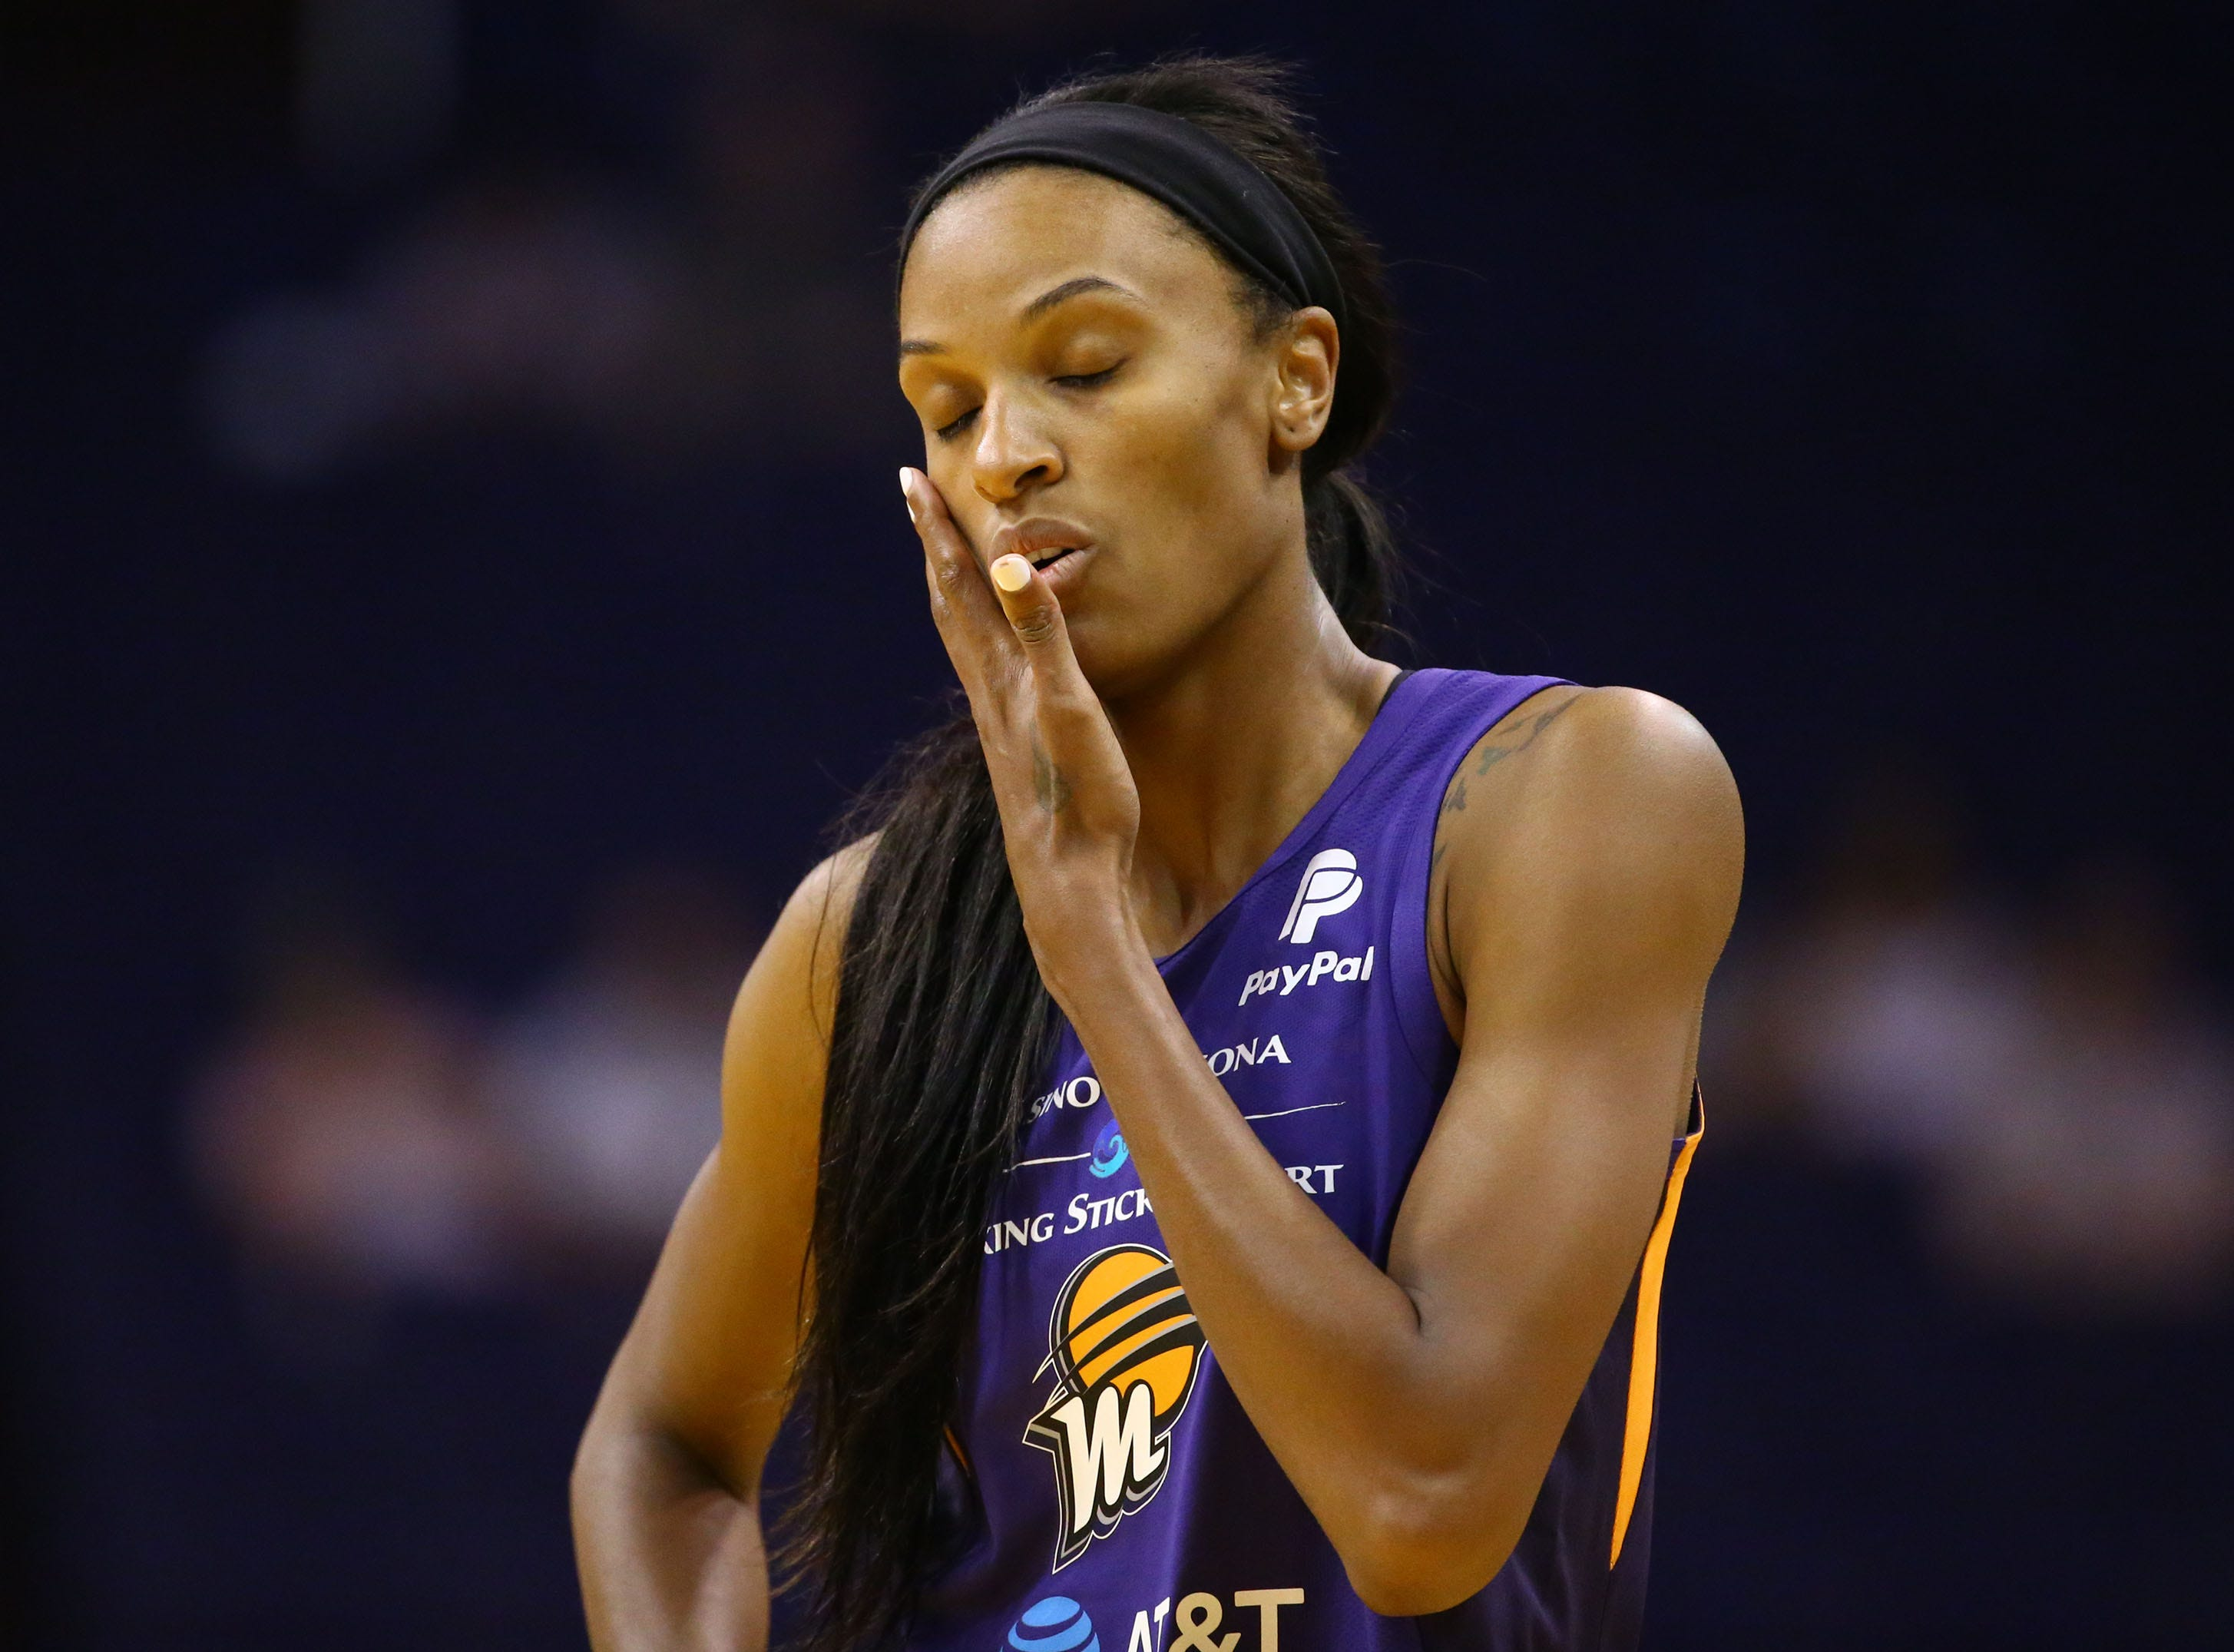 Phoenix Mercury forward DeWanna Bonner reacts after being hit in the face against the Los Angeles Sparks in the first half during a preseason game on May 11, 2019 in Phoenix, Ariz.